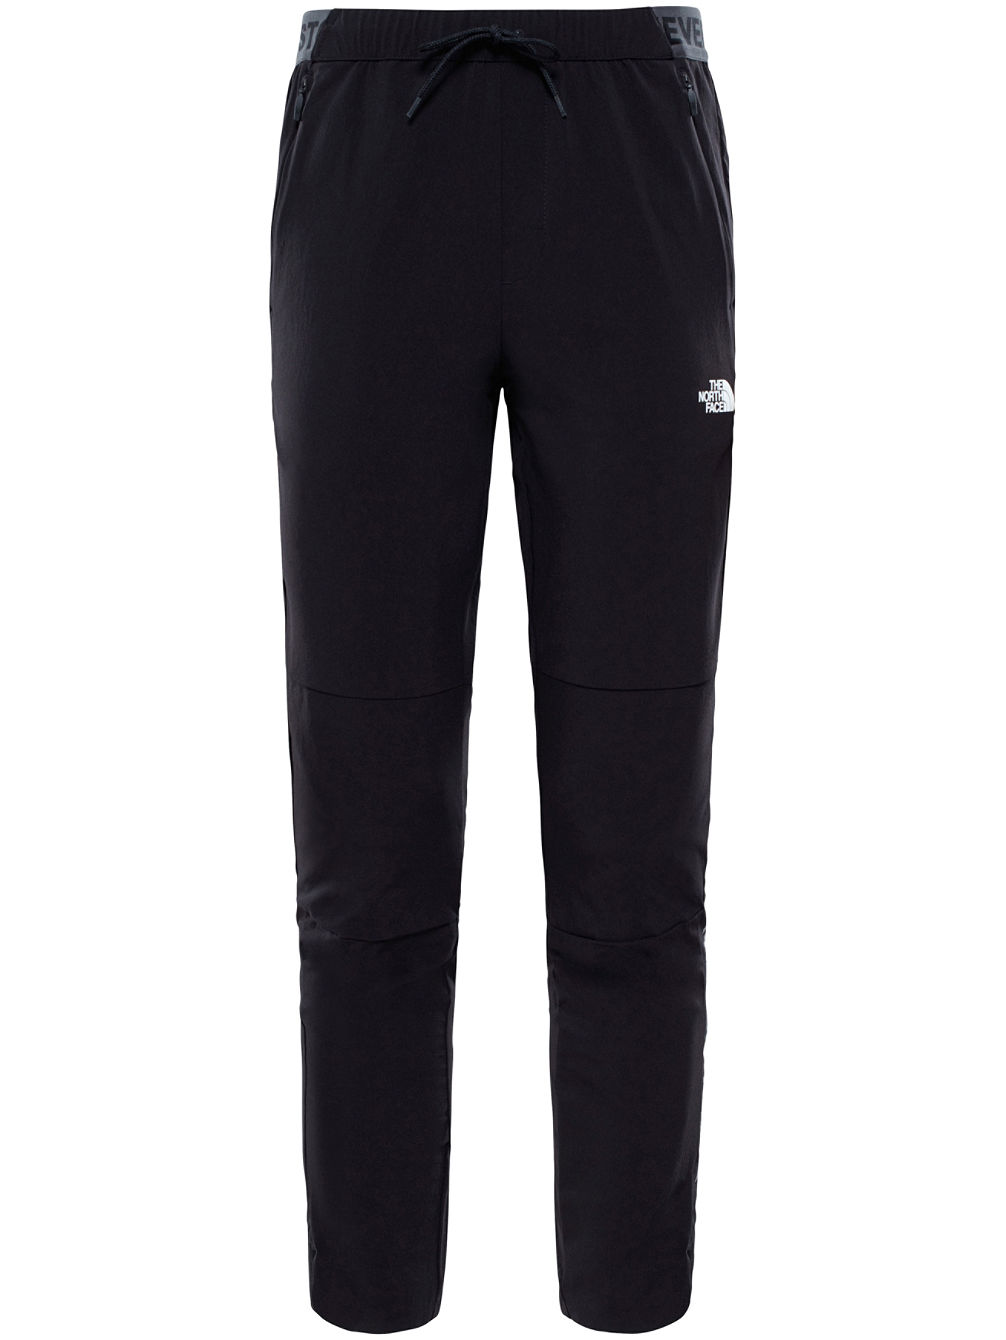 Terra Metro Training Tech Pants